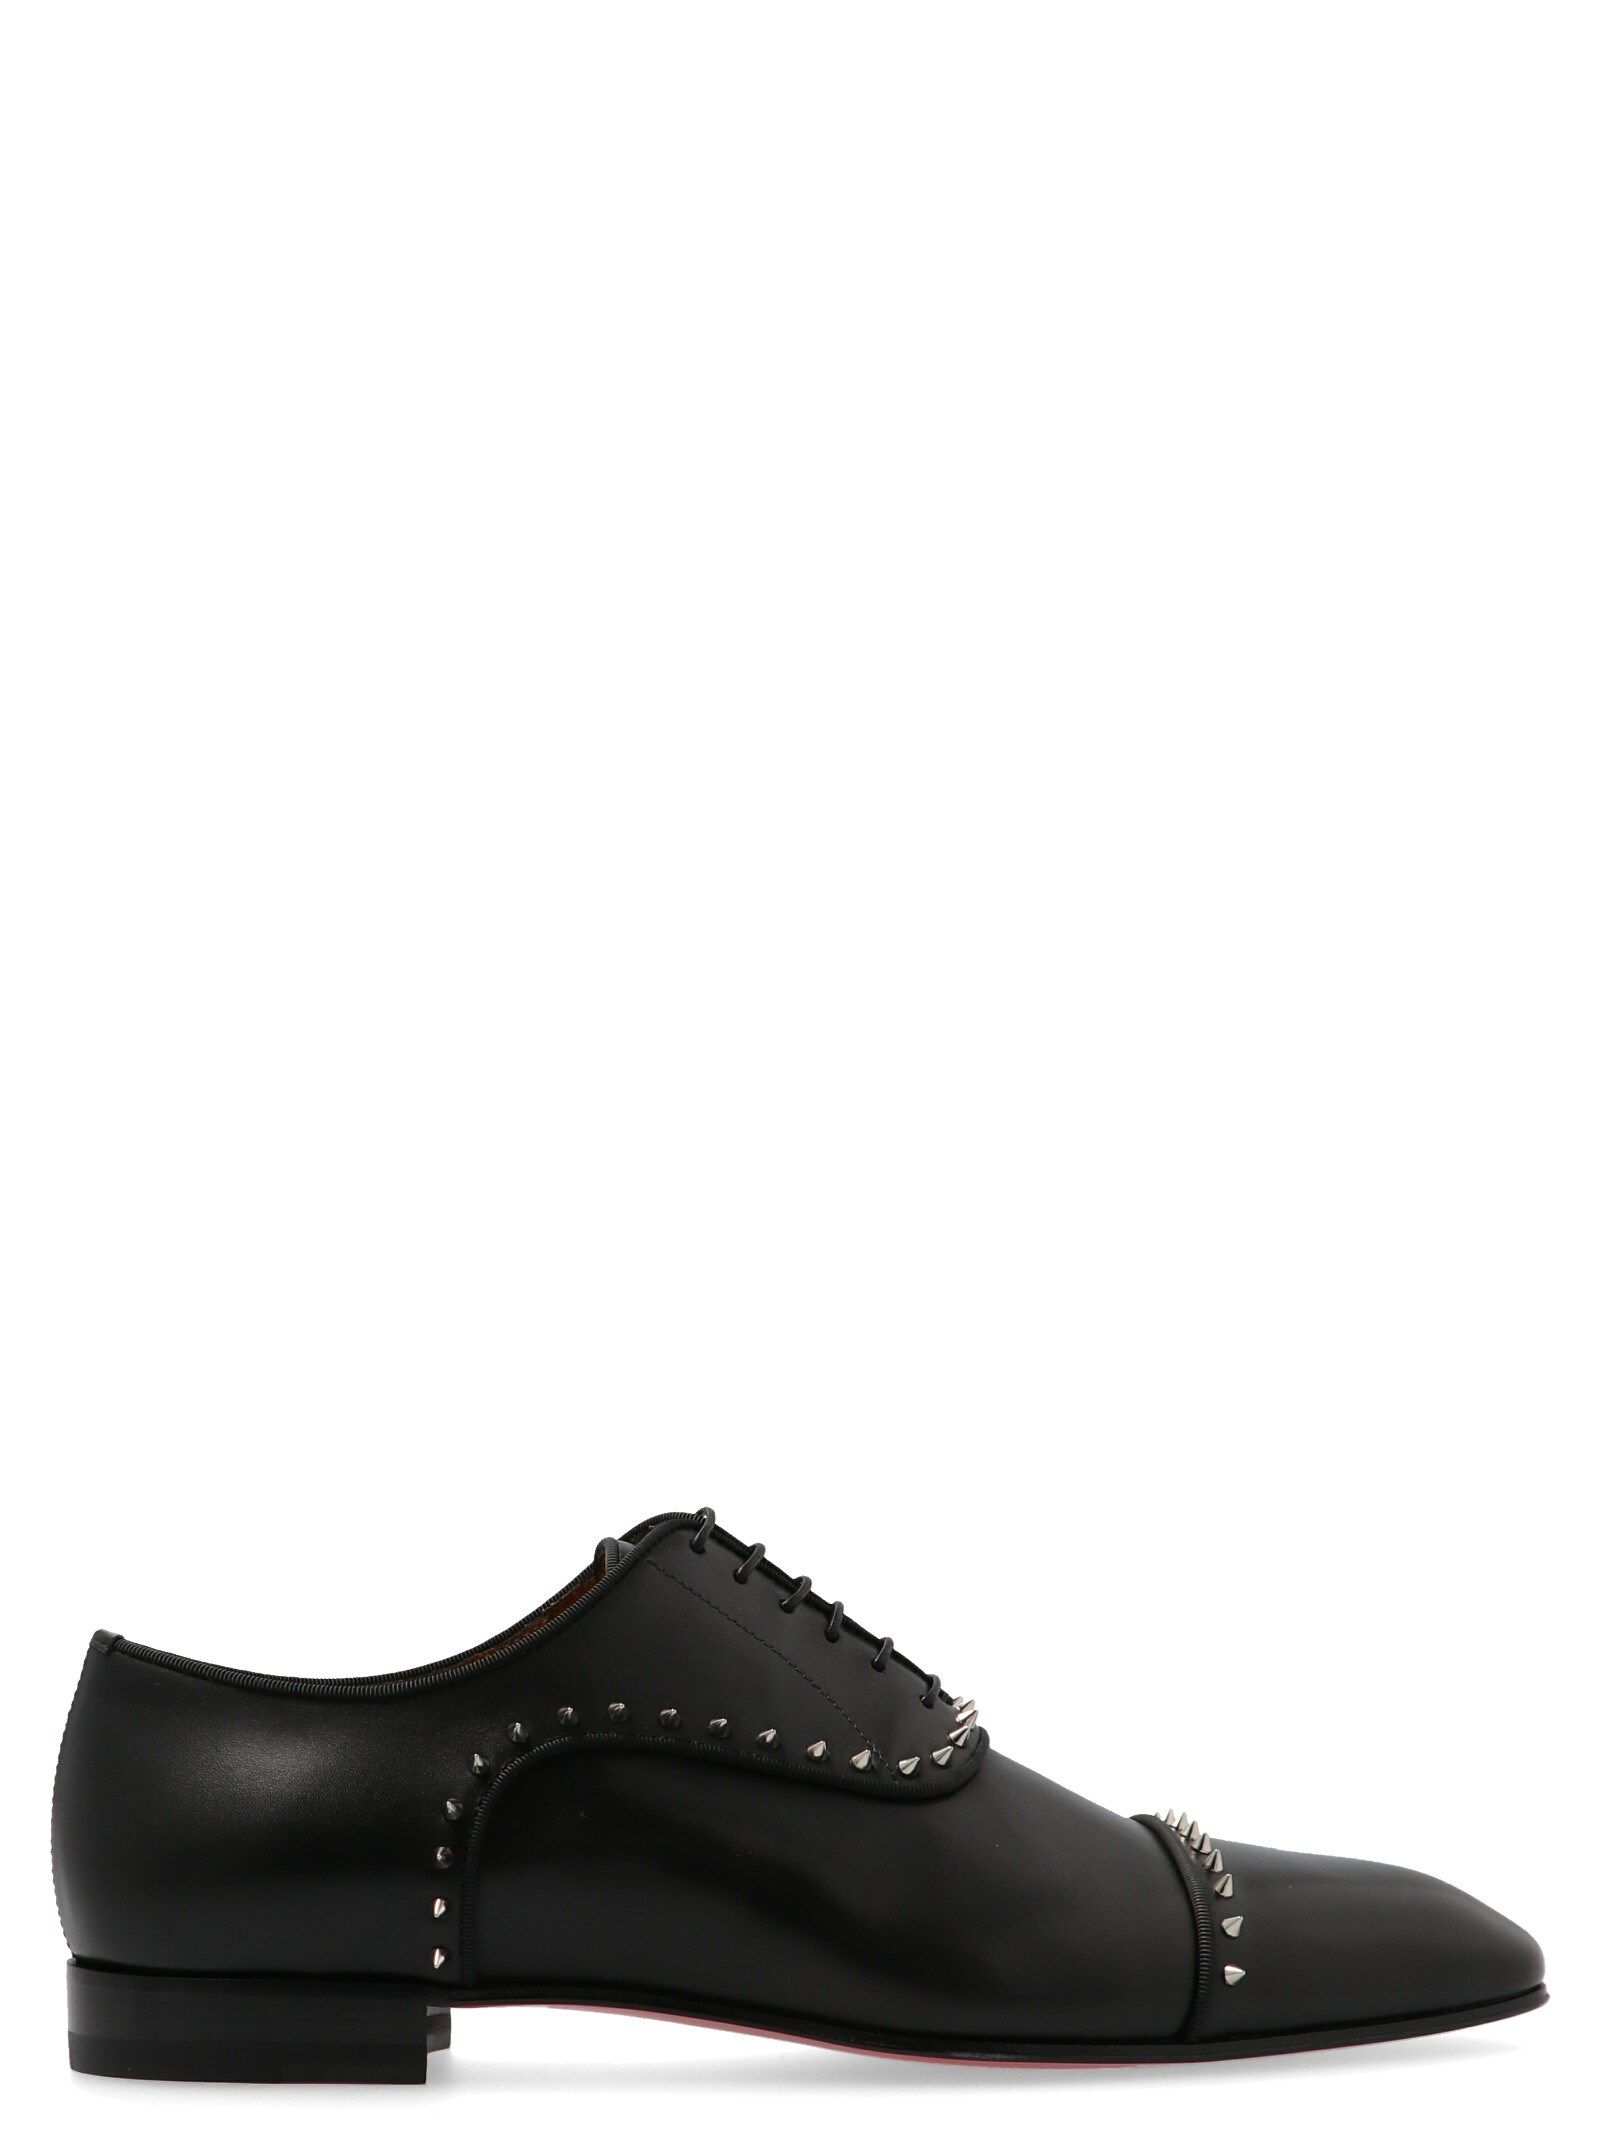 Christian Louboutin Black Leather Lace-Up Shoes